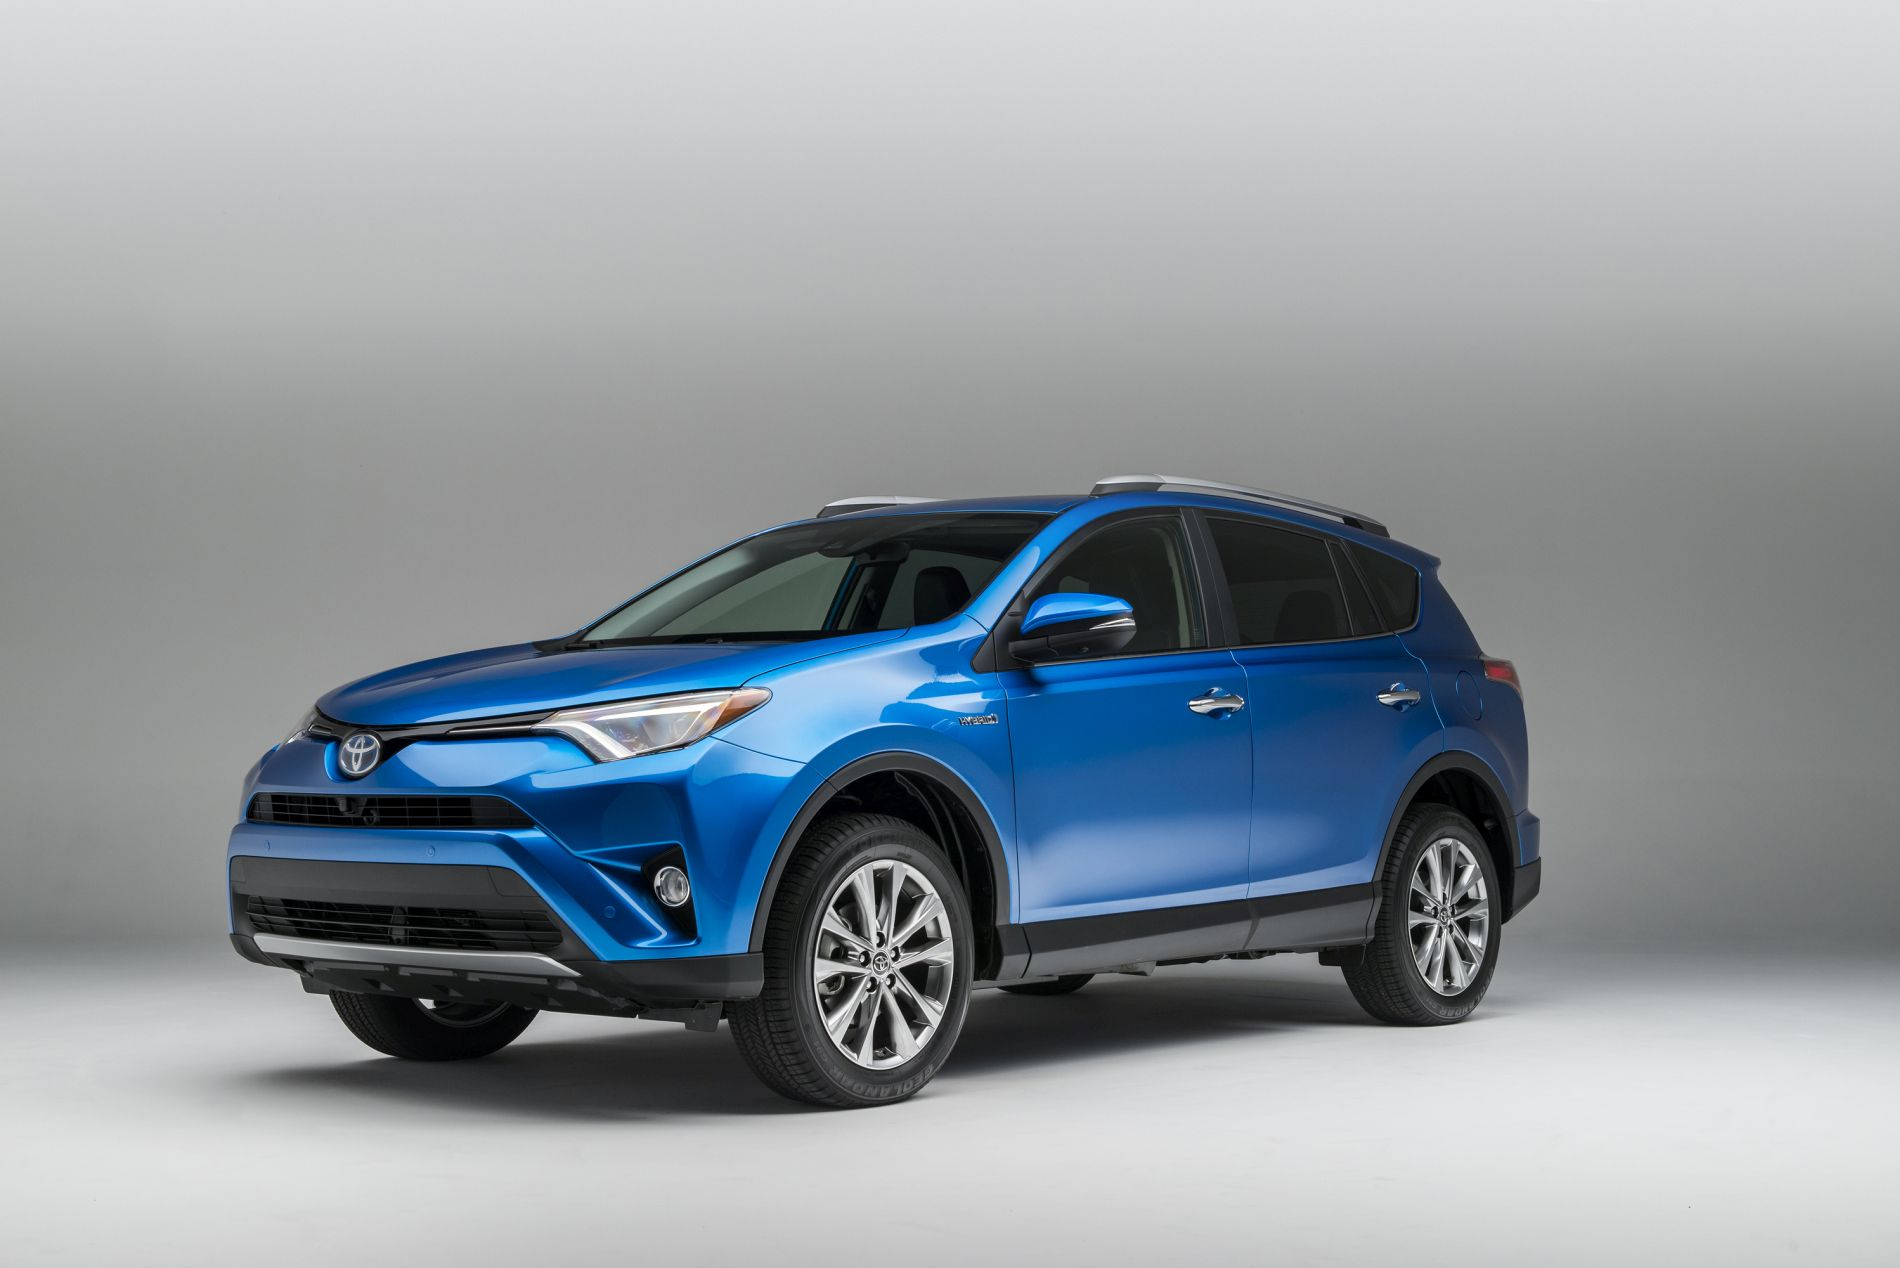 Toyota RAV4 will be built at Cambridge Canada from 2019